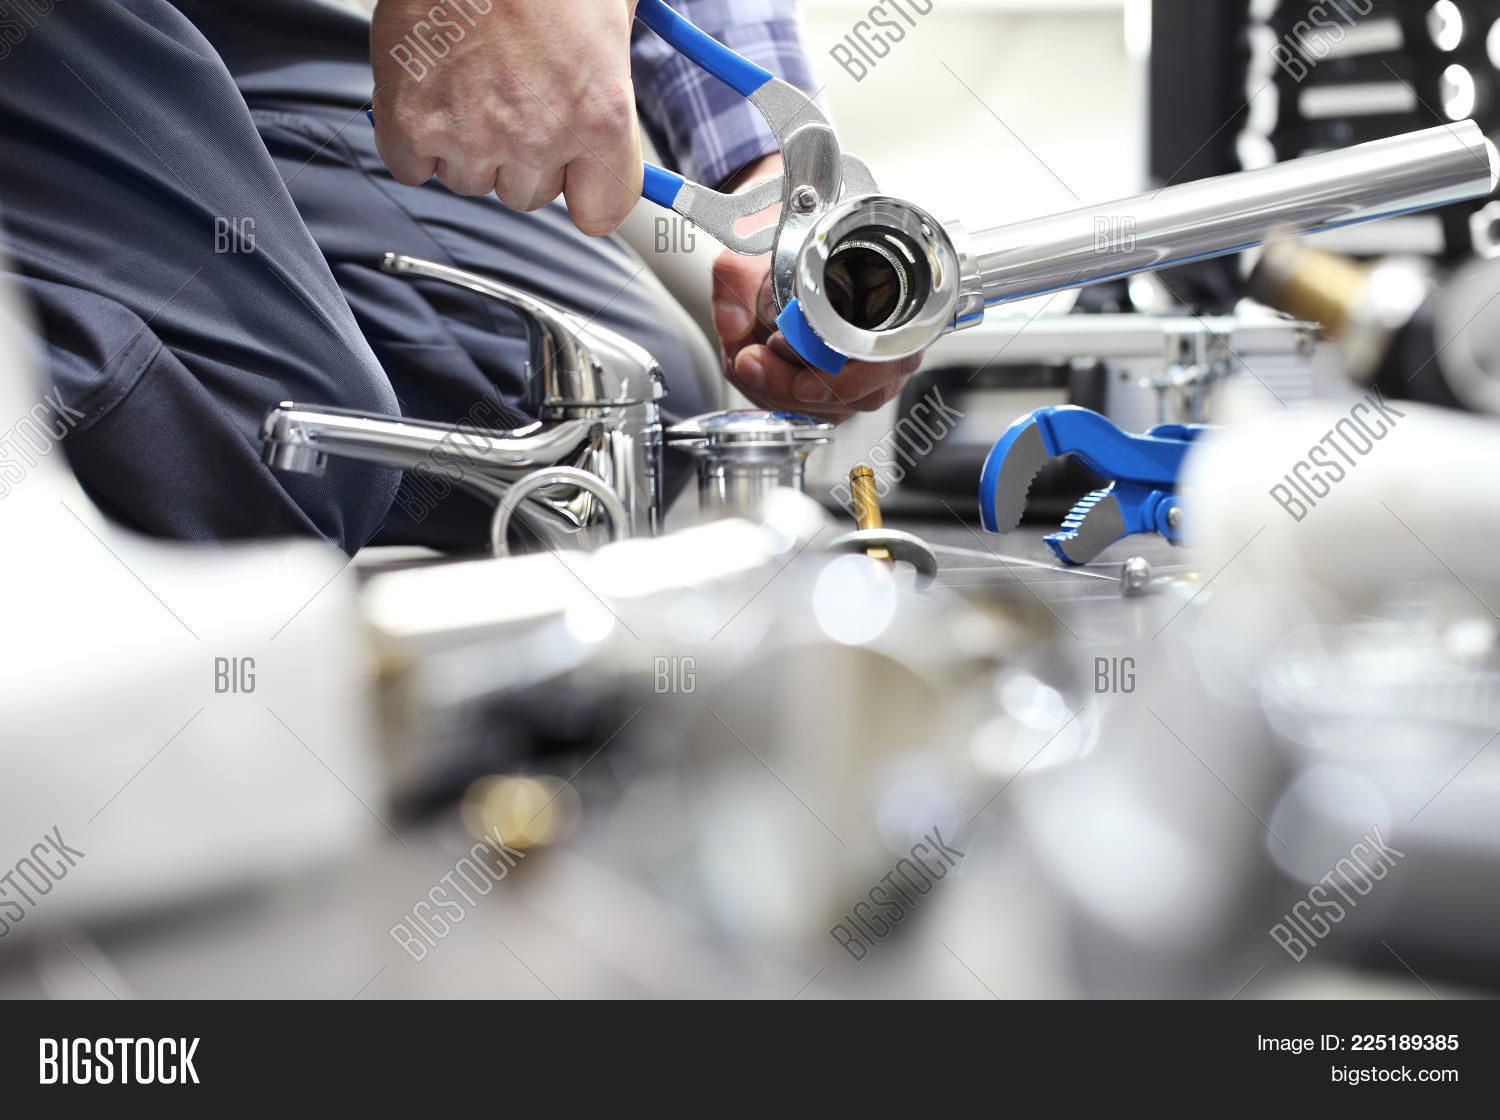 Hands Plumber Work Image & Photo (Free Trial) | Bigstock